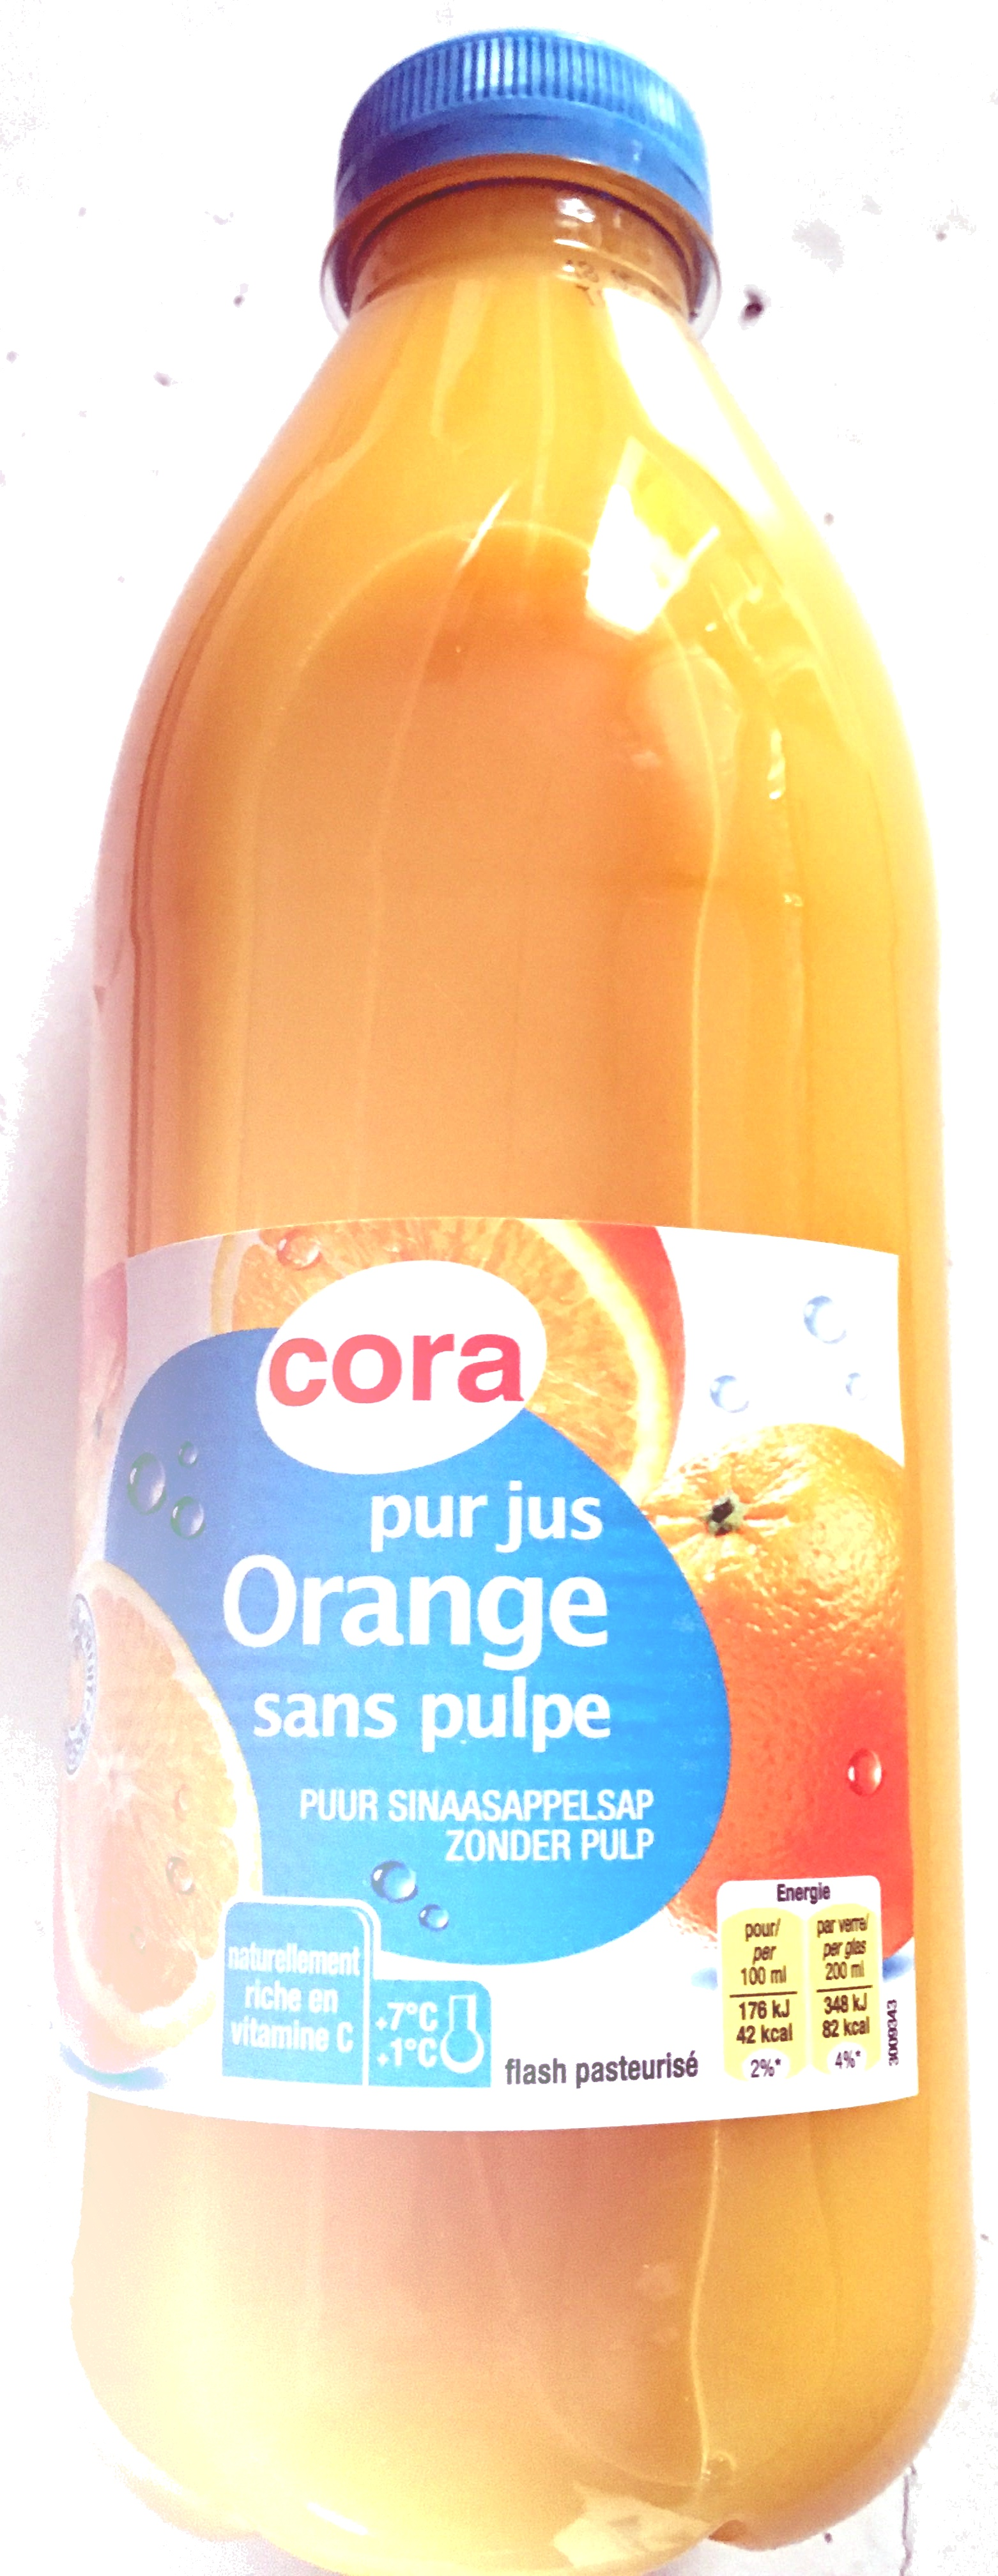 Pur jus Orange sans pulpe - Product